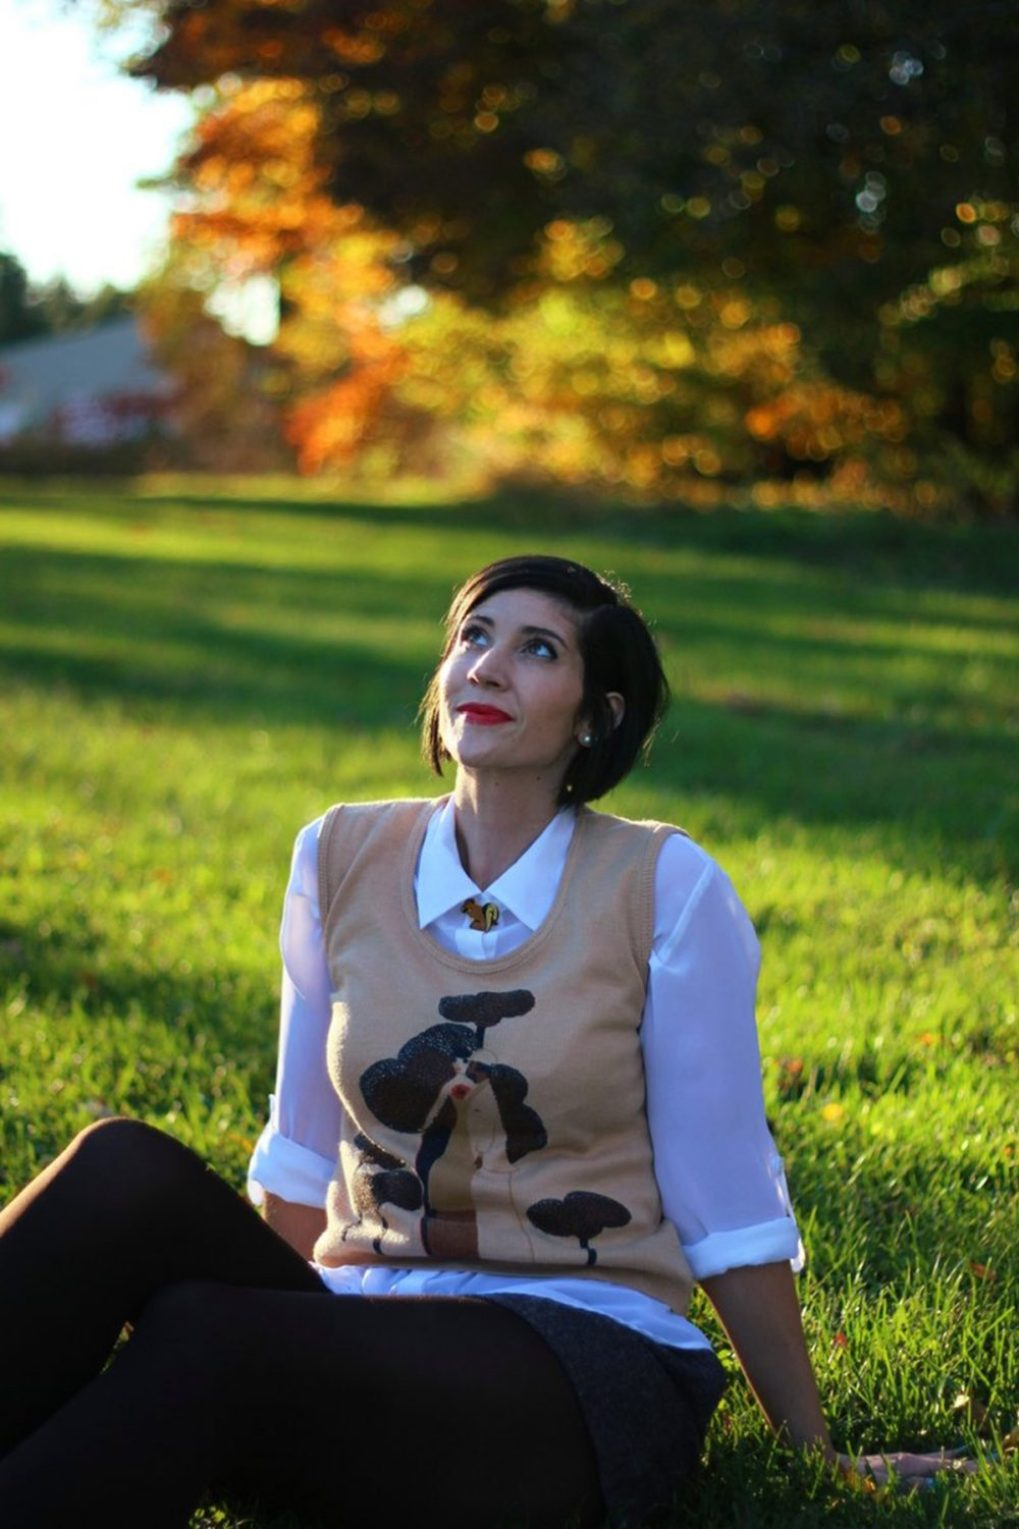 Outfit: White button down, vintage sweater vest, DIY wooden squirrel brooch, Colourpop lip gloss, tweed shorts with tights, brown flats